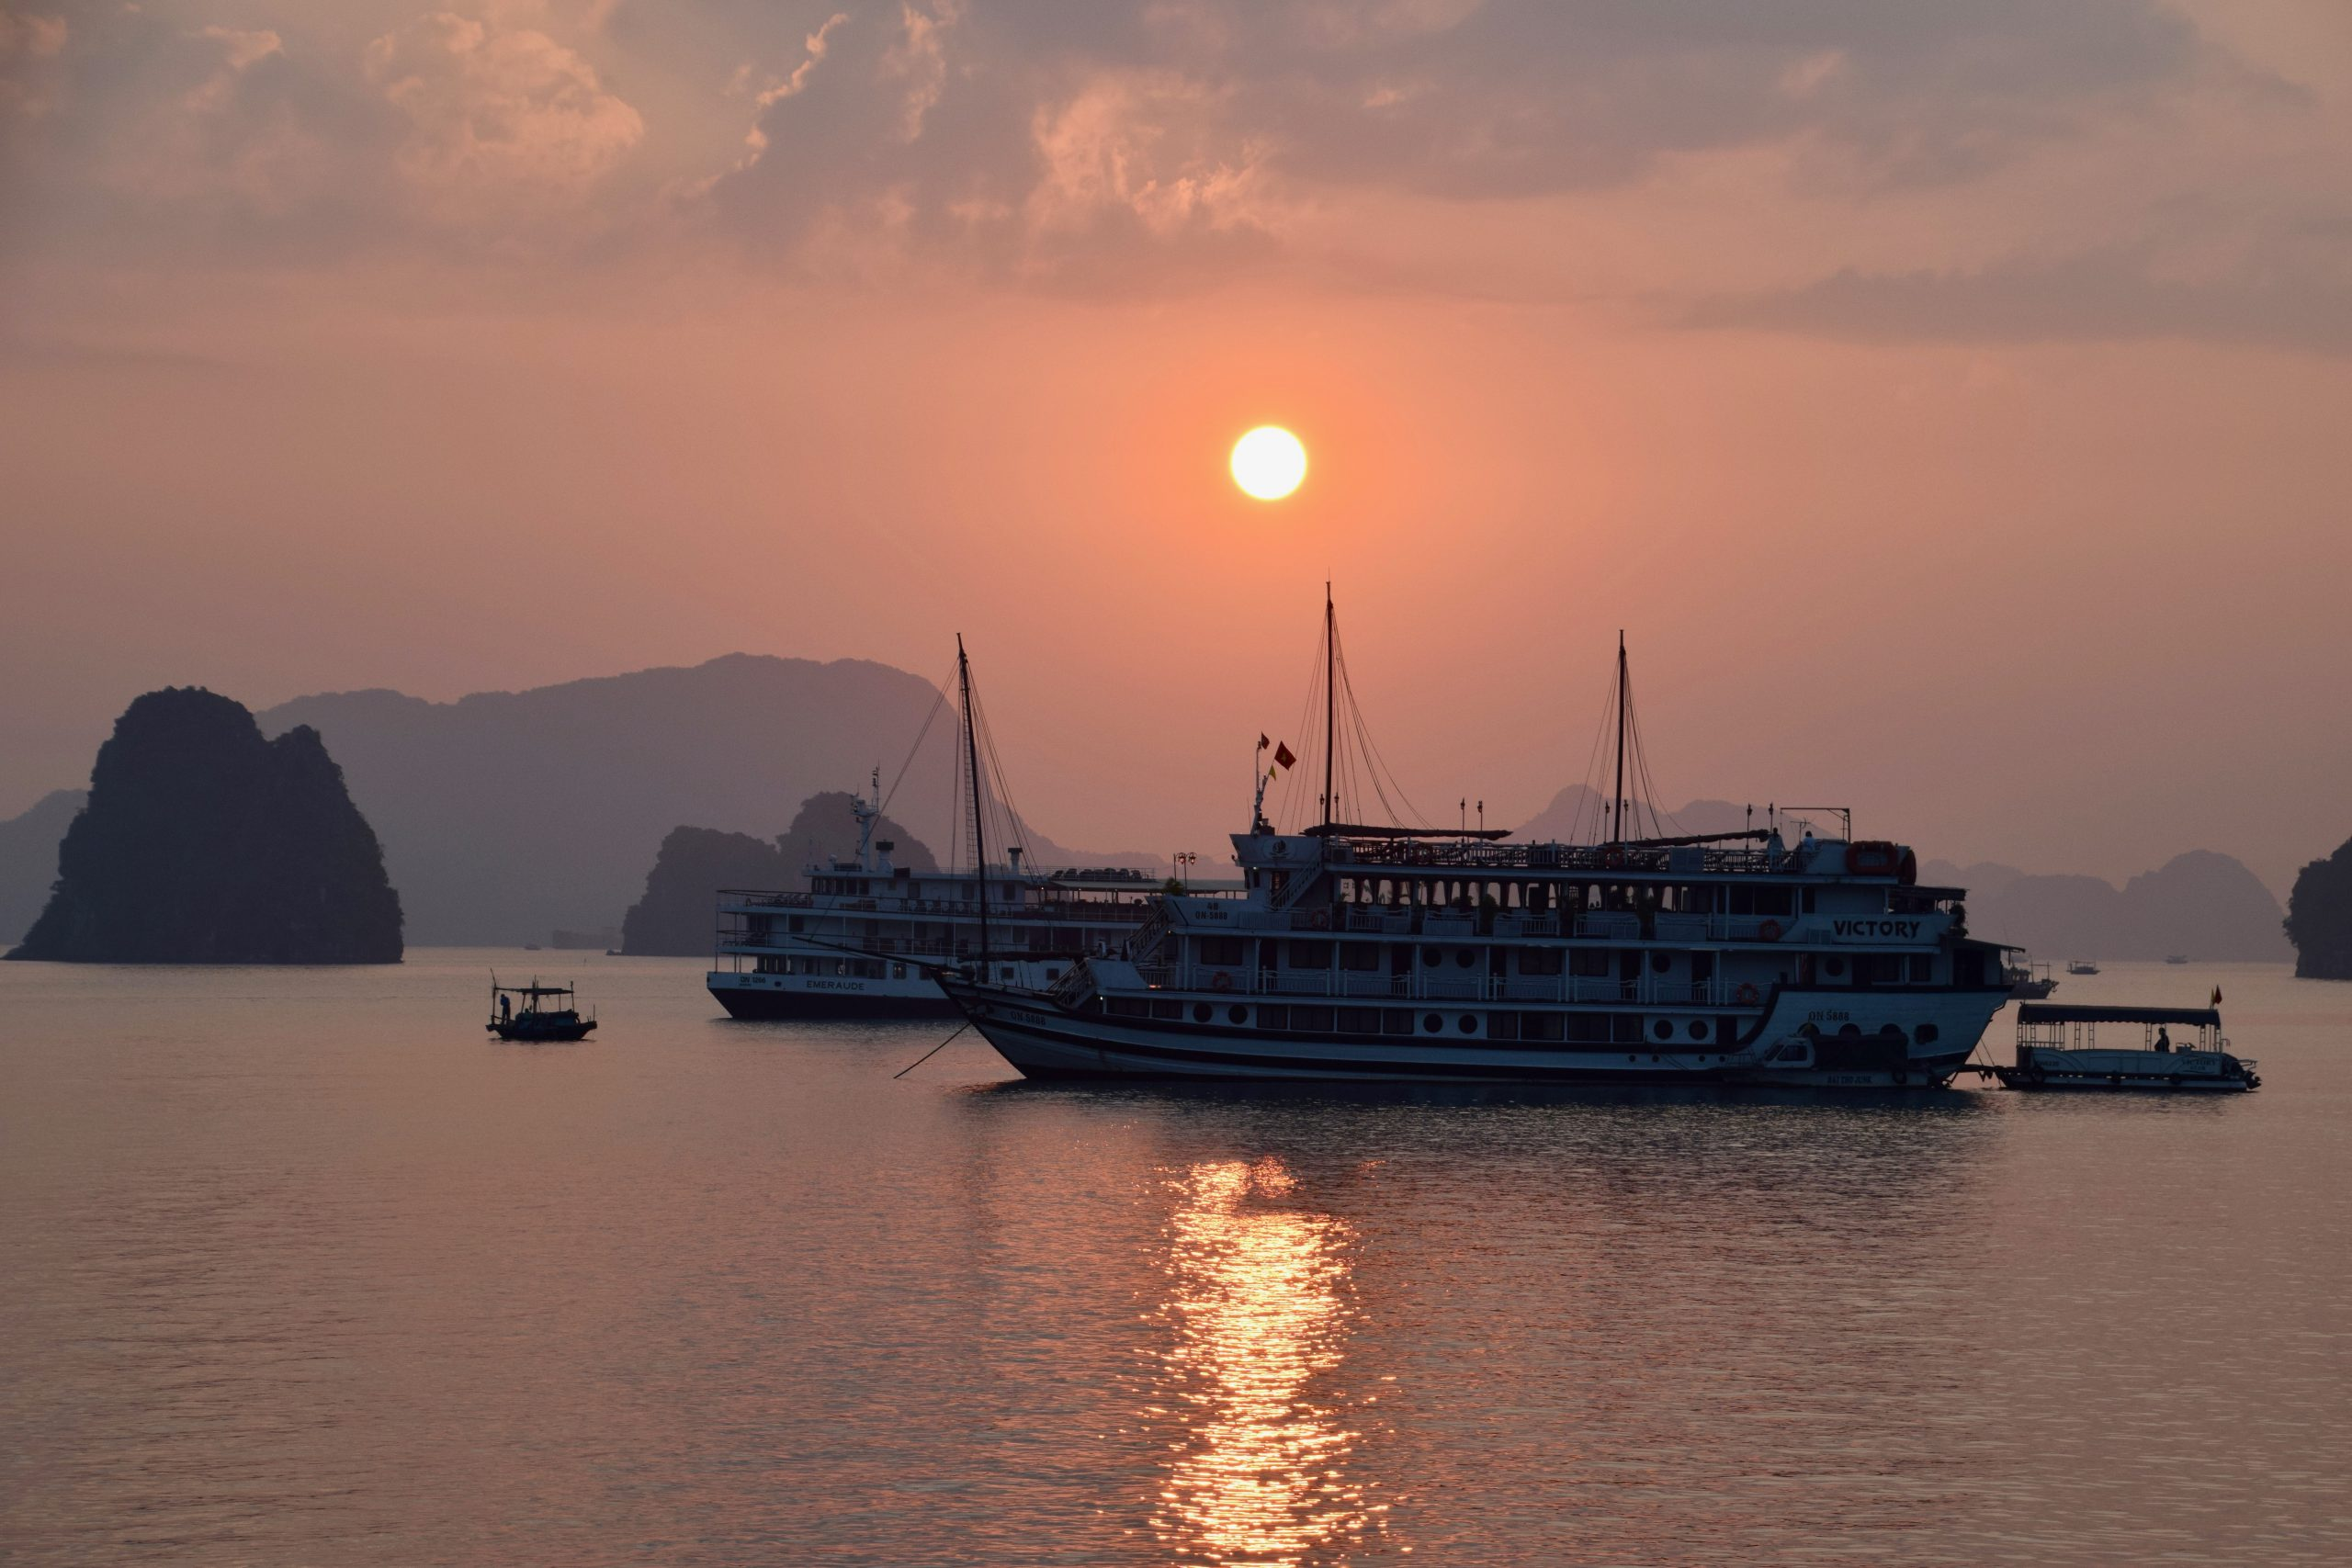 Halong Bay, Vietnam at sunset with the famous islands and junk boats